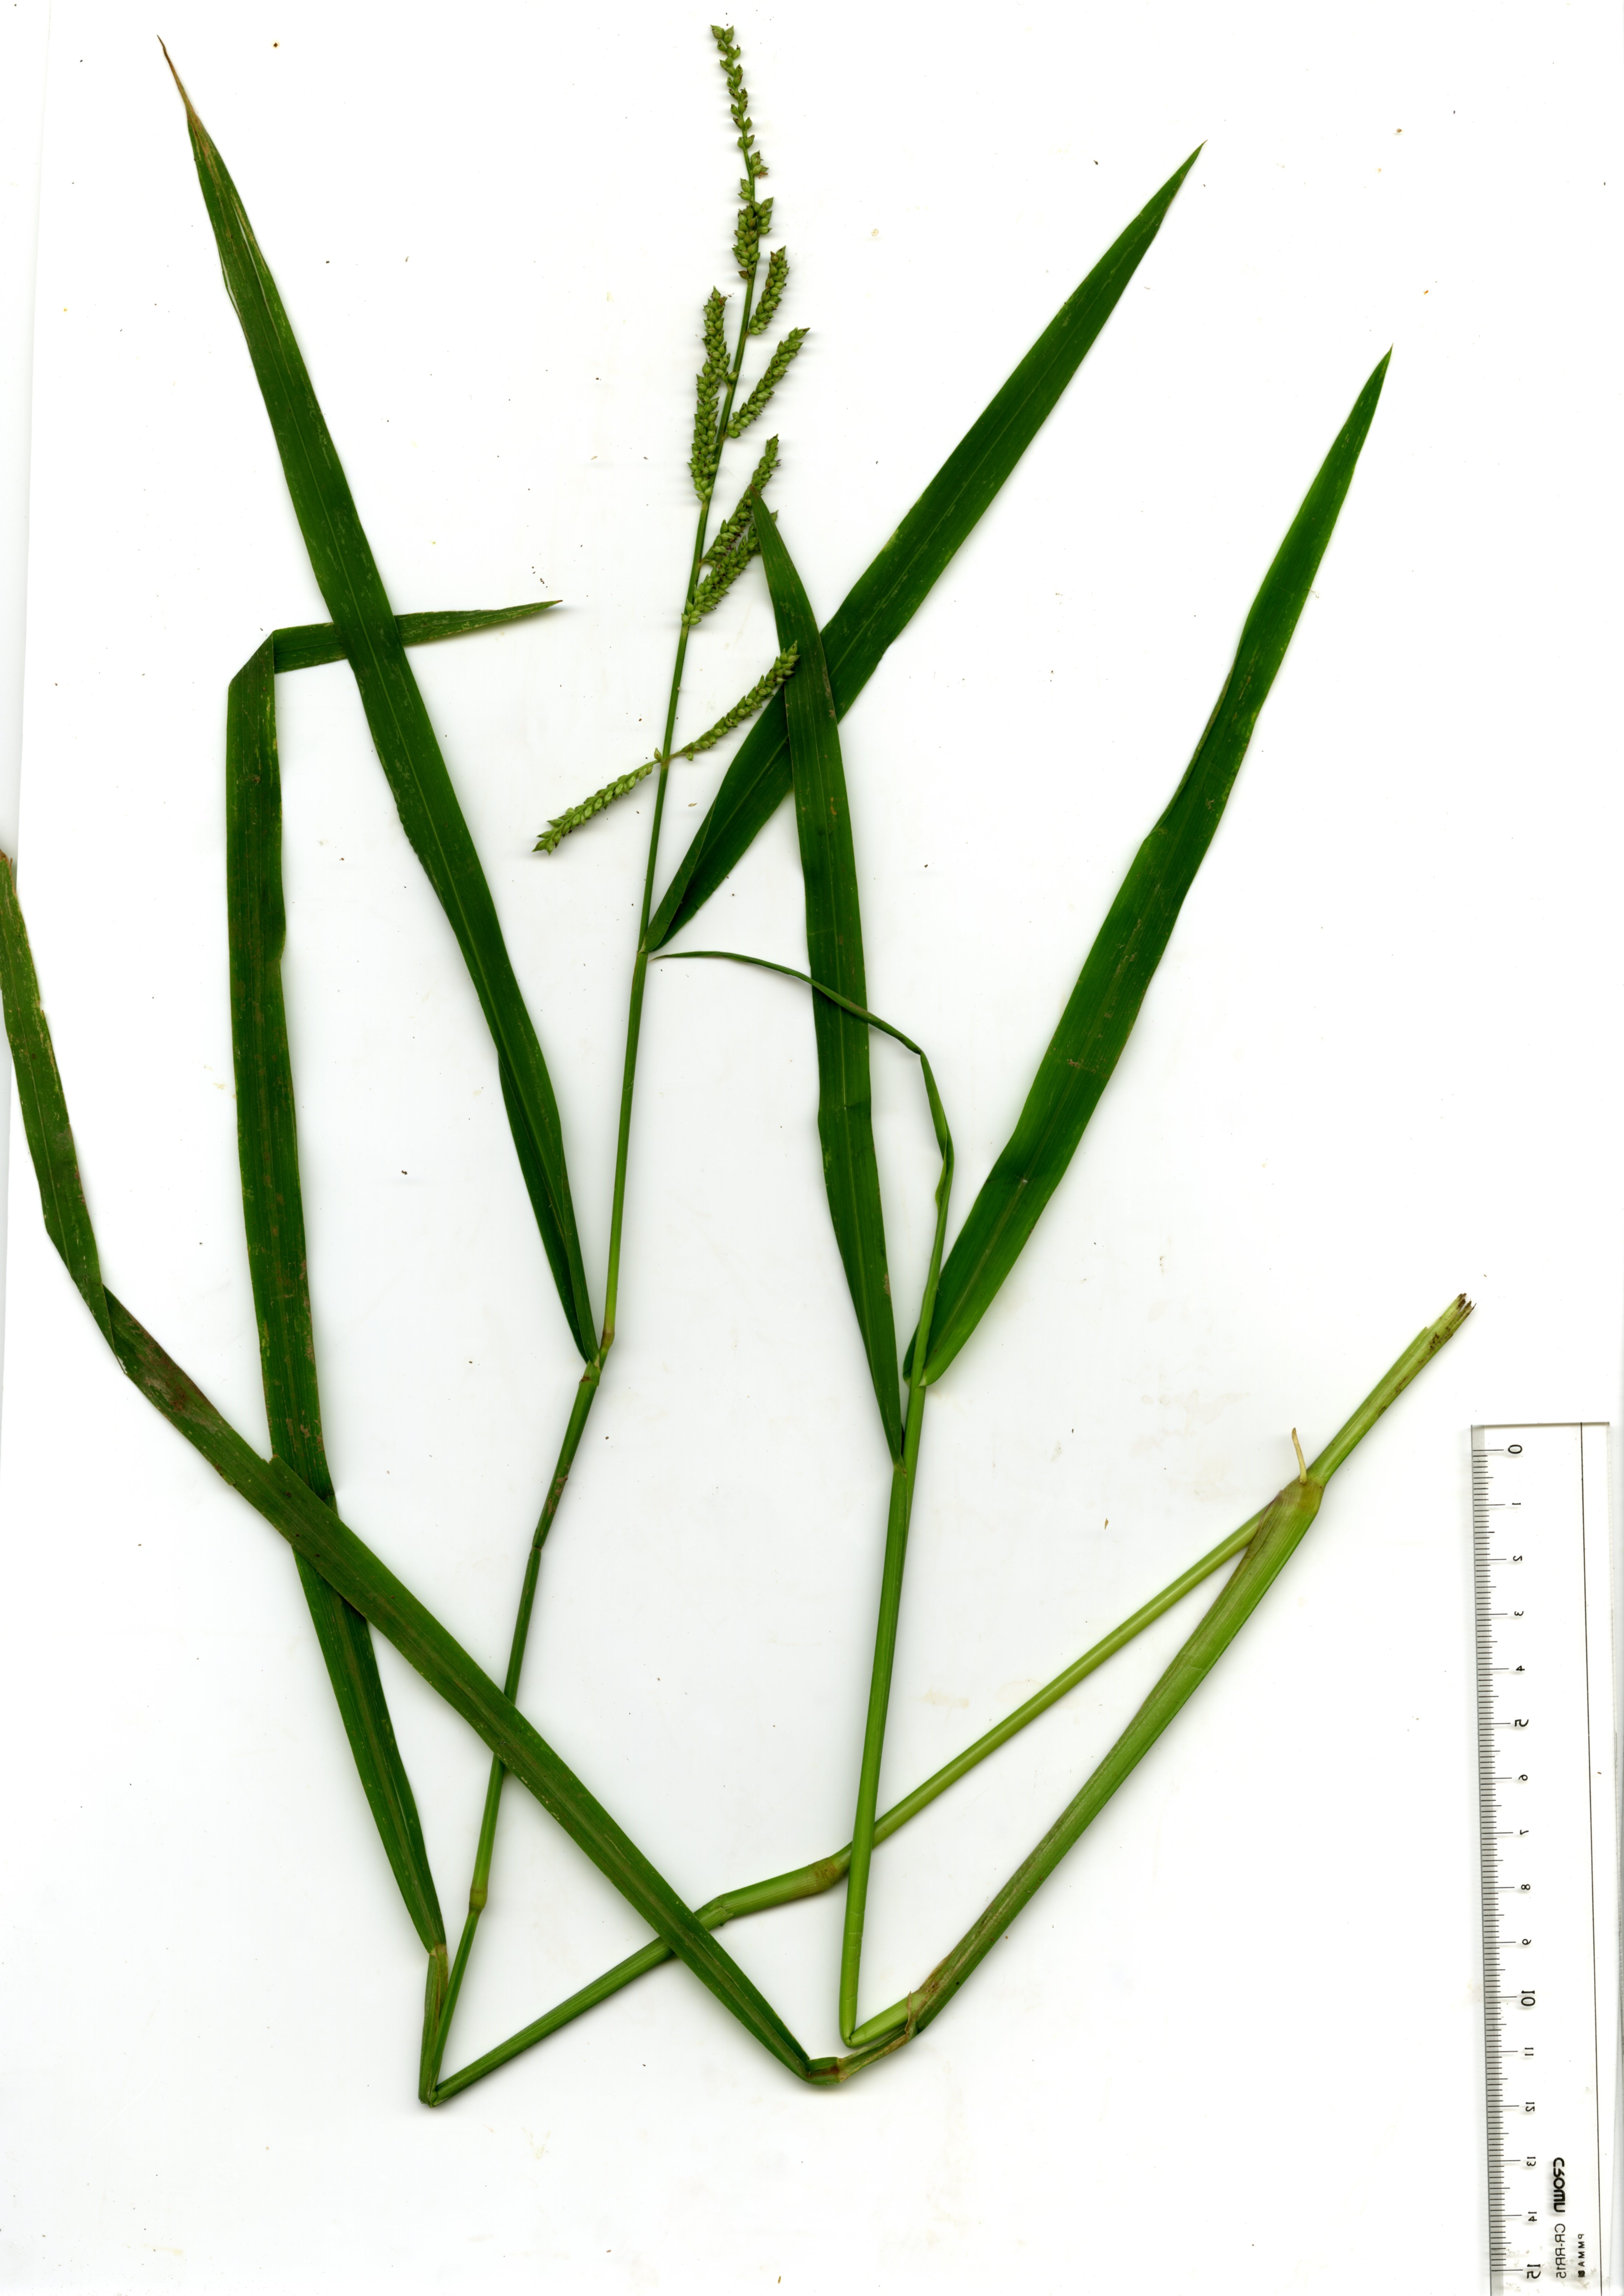 Whole plant with panicle